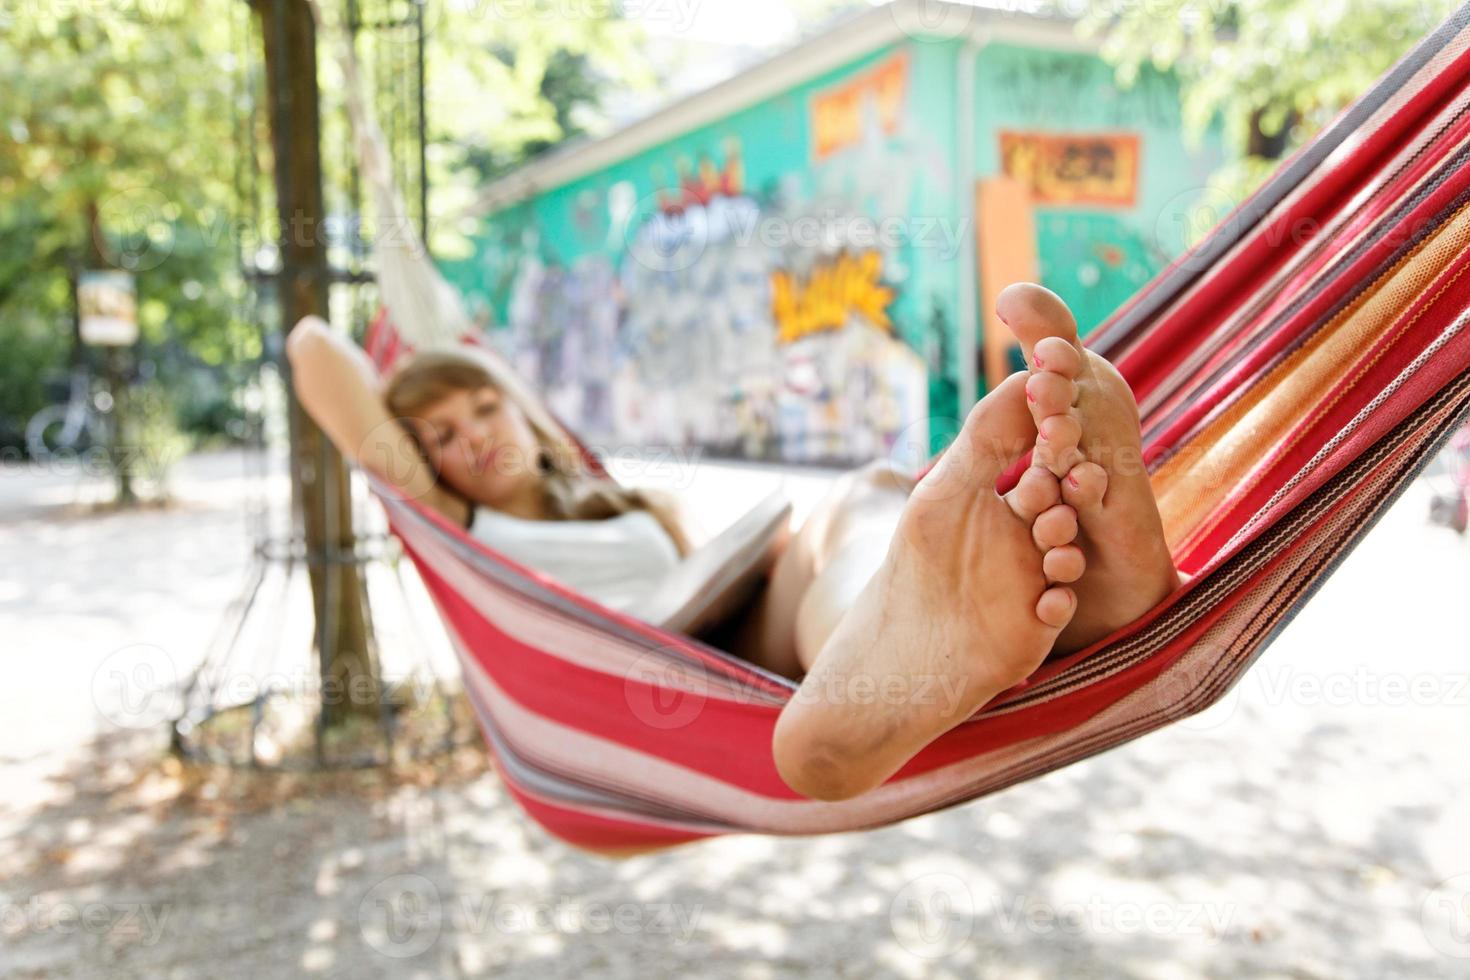 Hammock feet photo